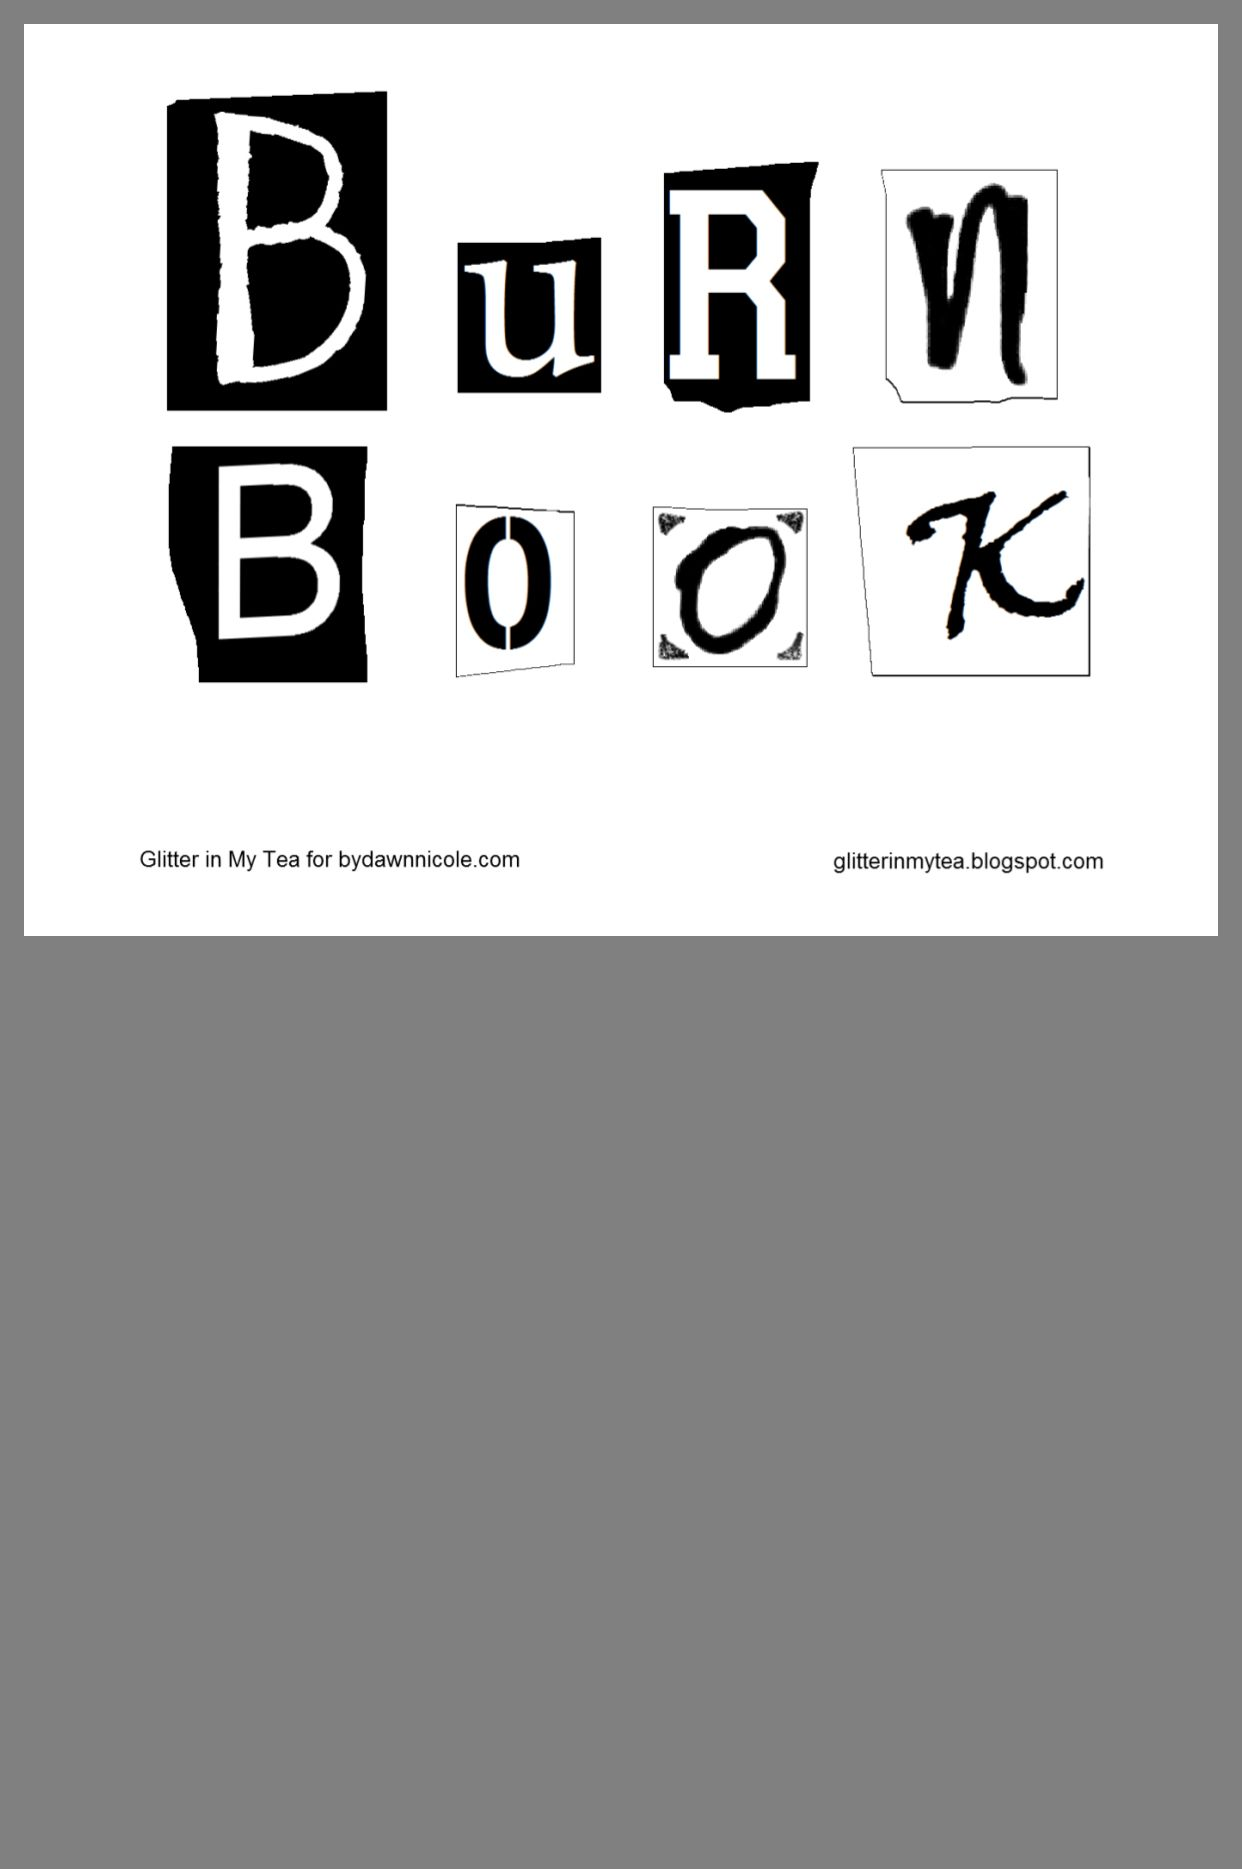 Pin By Kimberly Daly On Halloween Mean Girls Burn Book Book Template Book Works